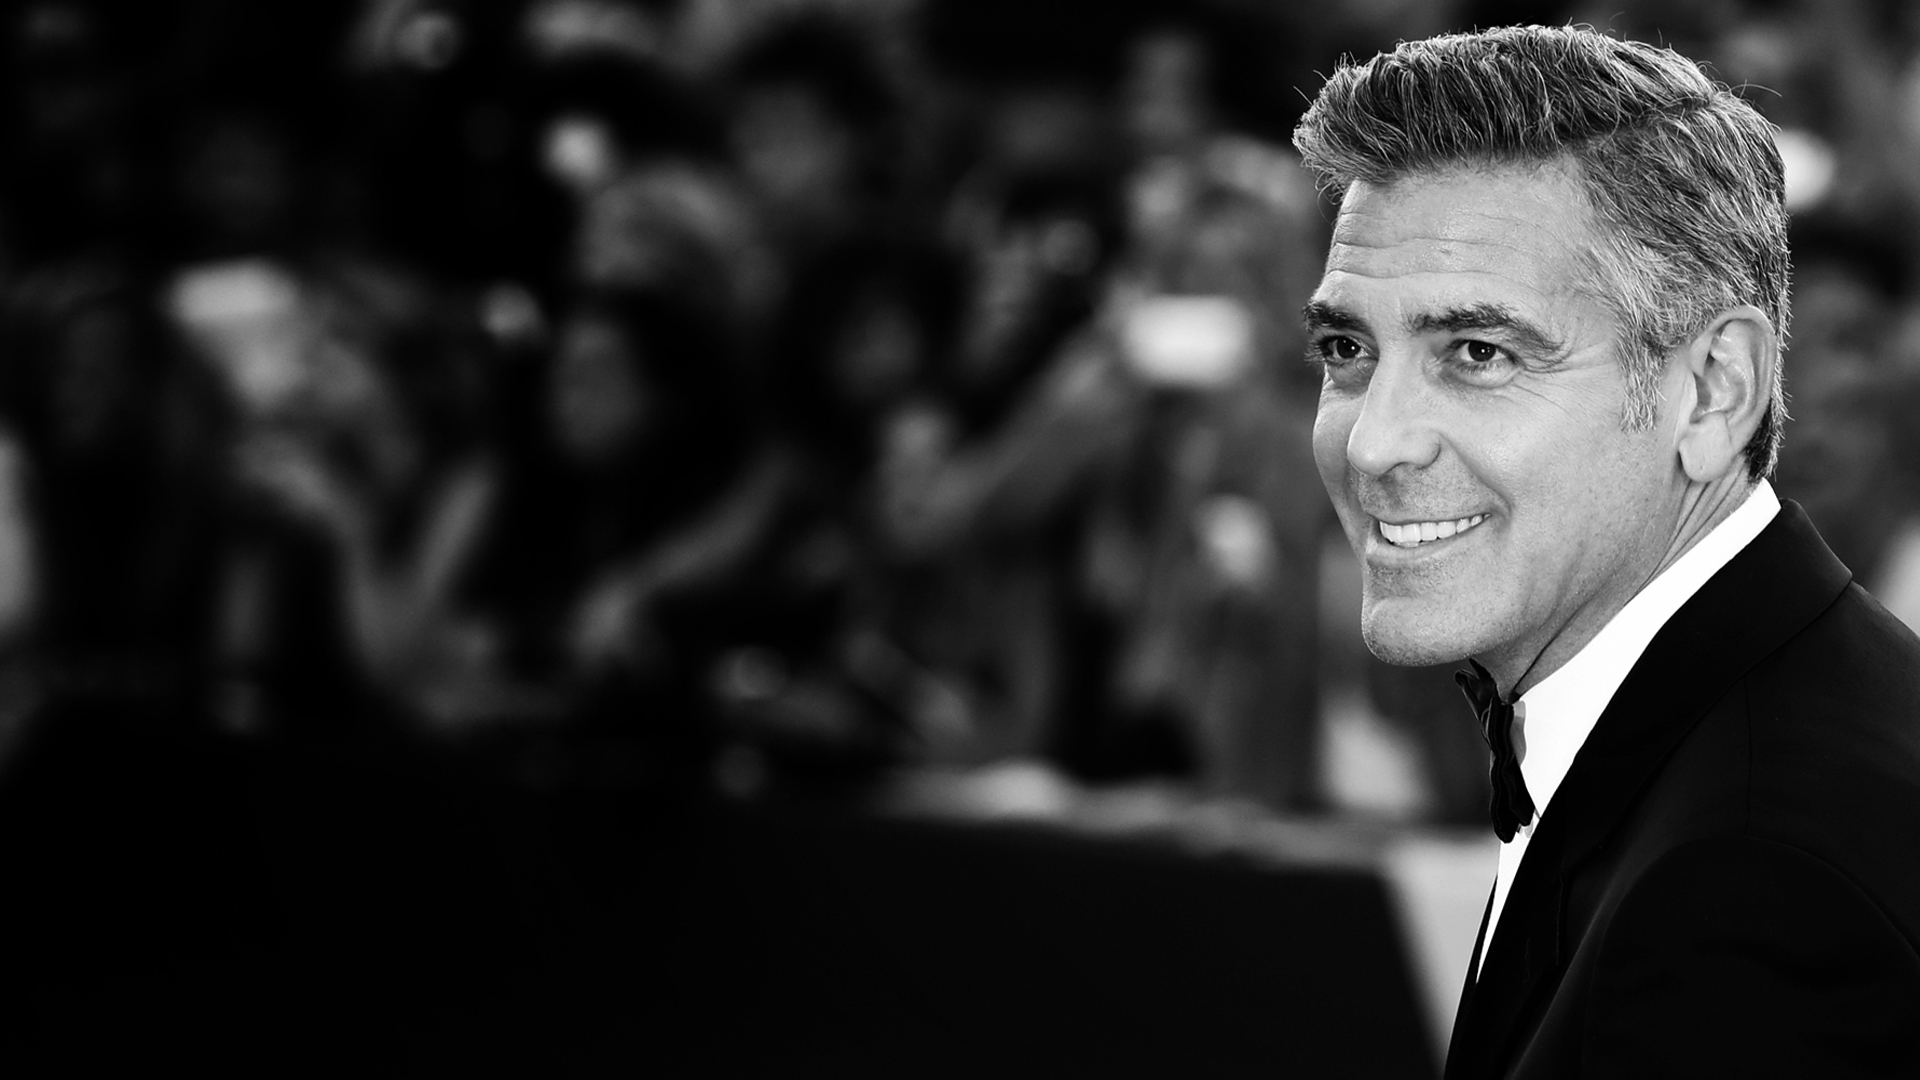 george clooney widescreen computer wallpaper 1066